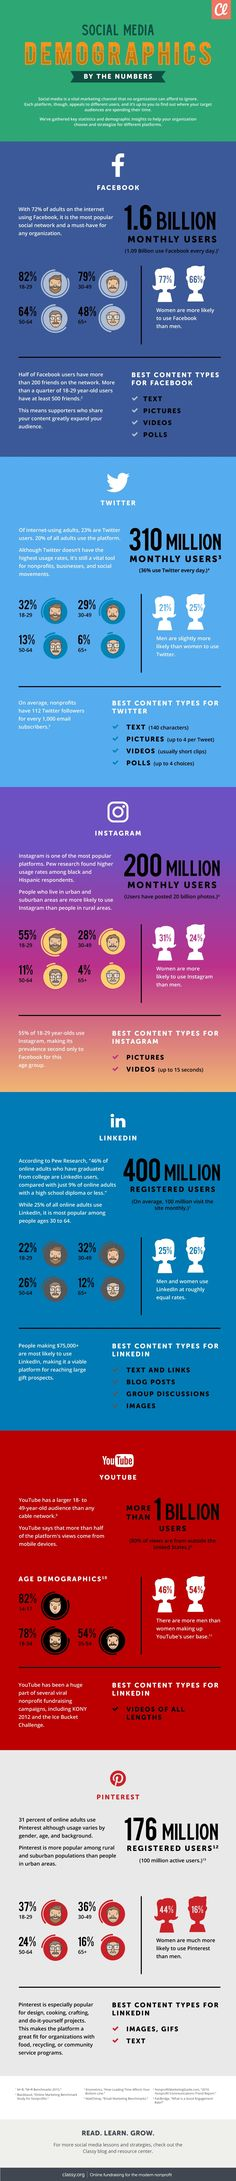 INFOGRAPHIC: Social Media Demographics By the Numbers